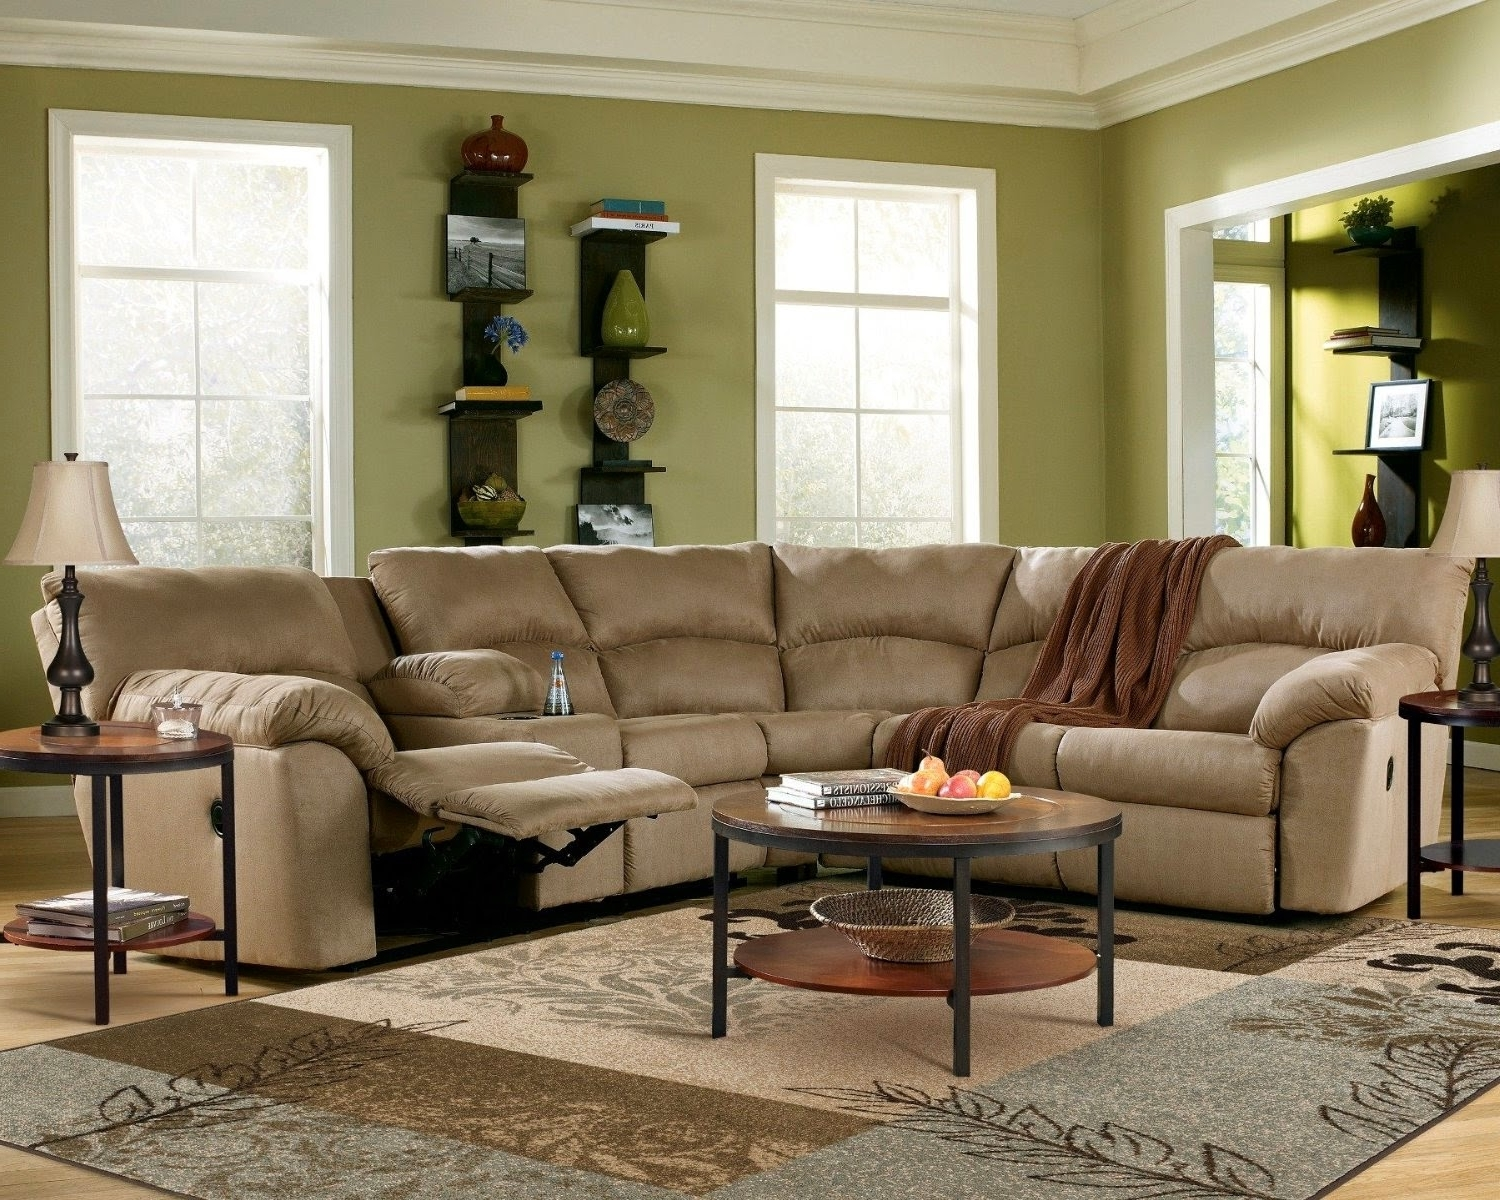 Current Curved Sofa: Curved Reclining Sofa With Curved Sectional Sofas With Recliner (View 5 of 15)